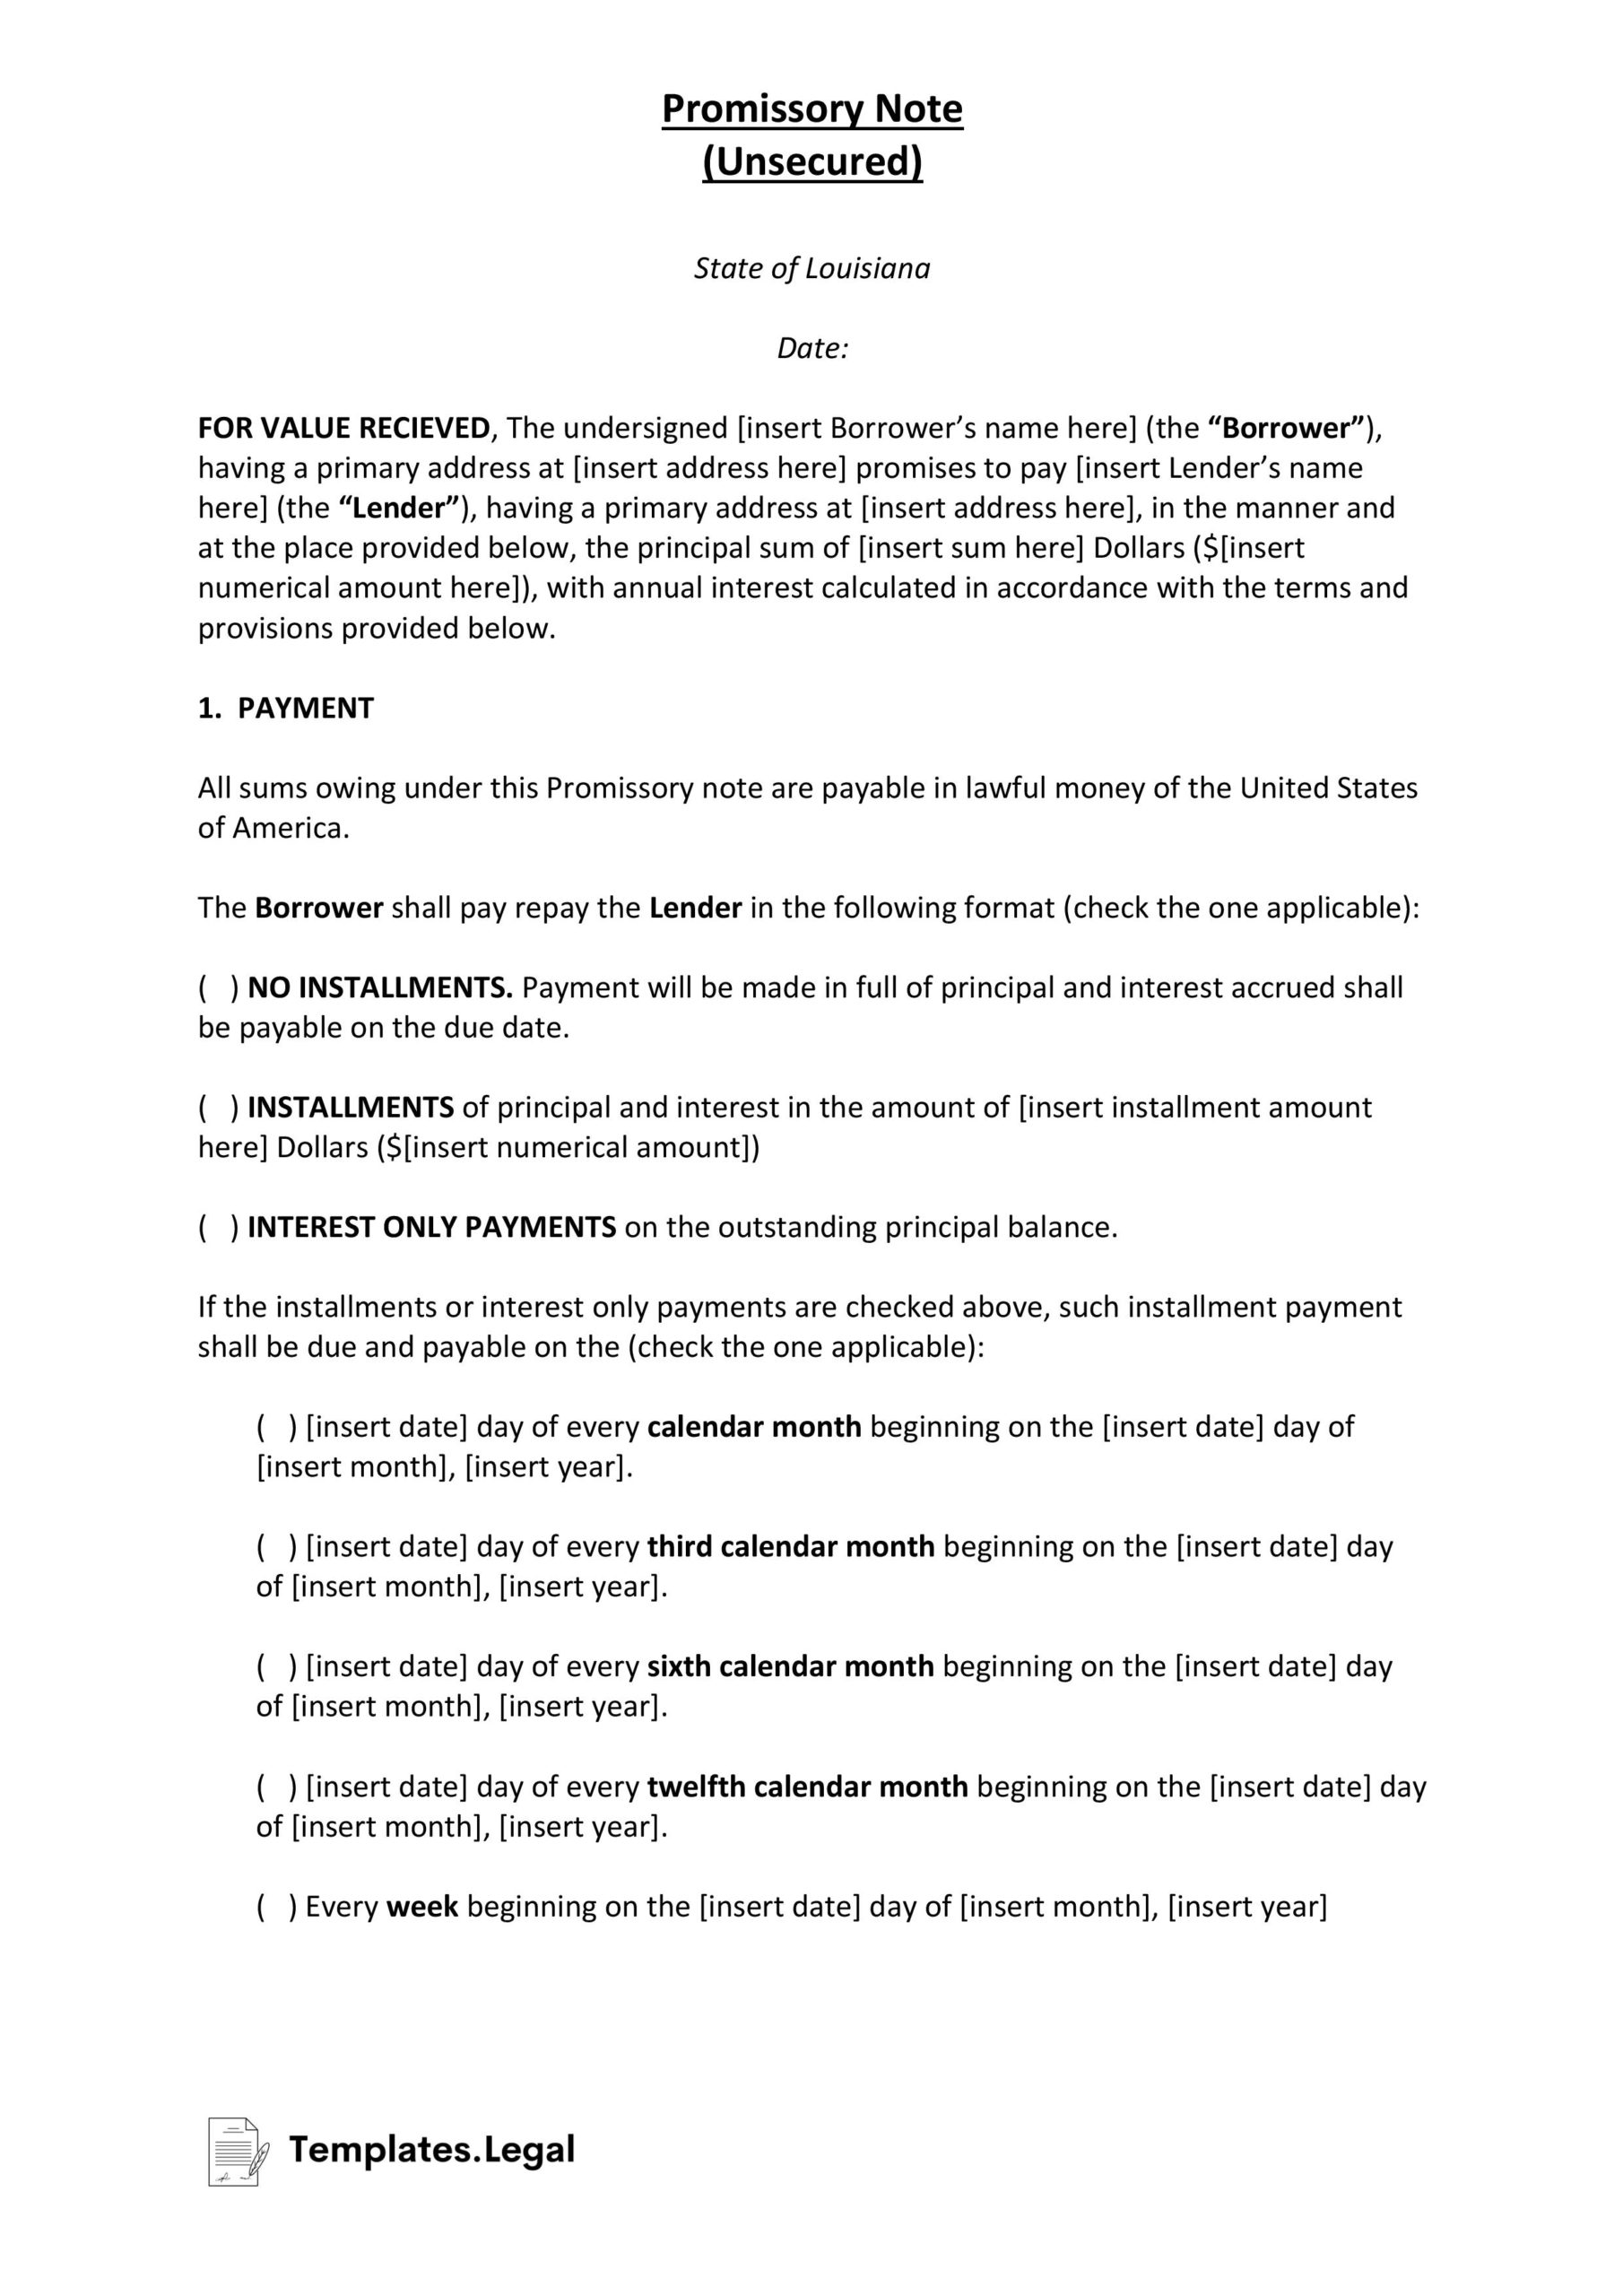 Louisiana Unsecured Promissory Note - Templates.Legal